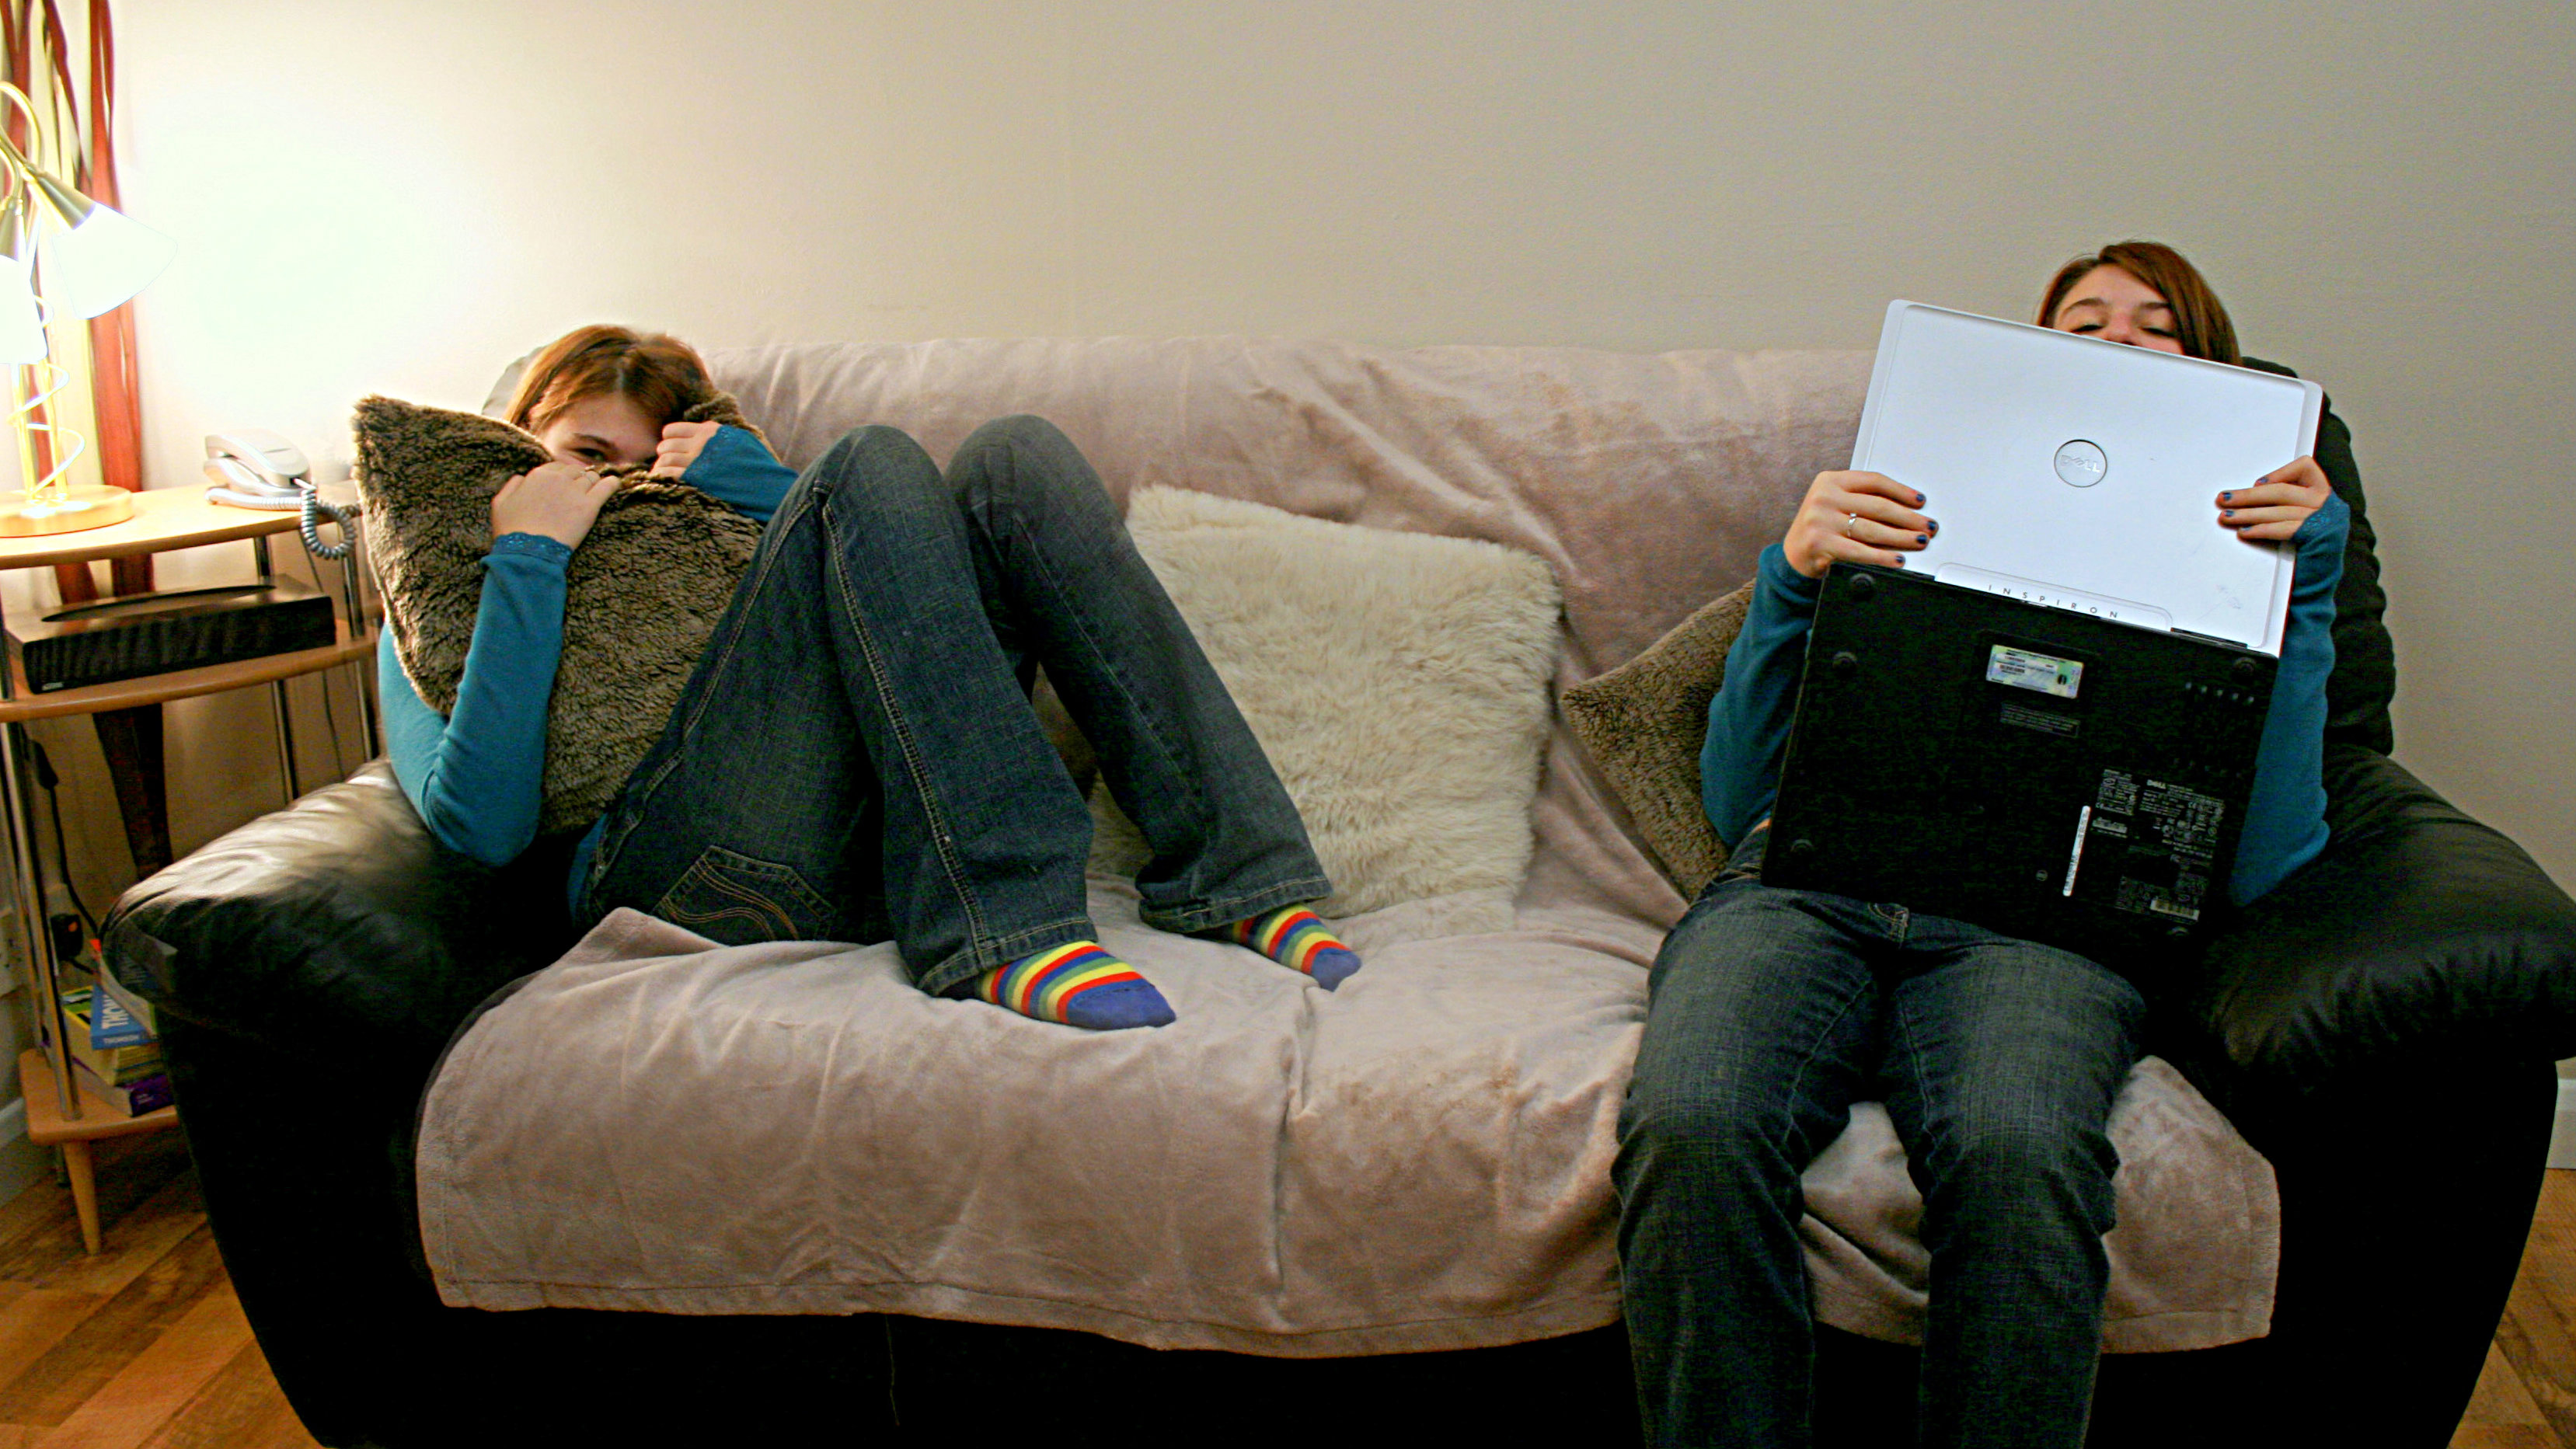 Photo: Teens on couch